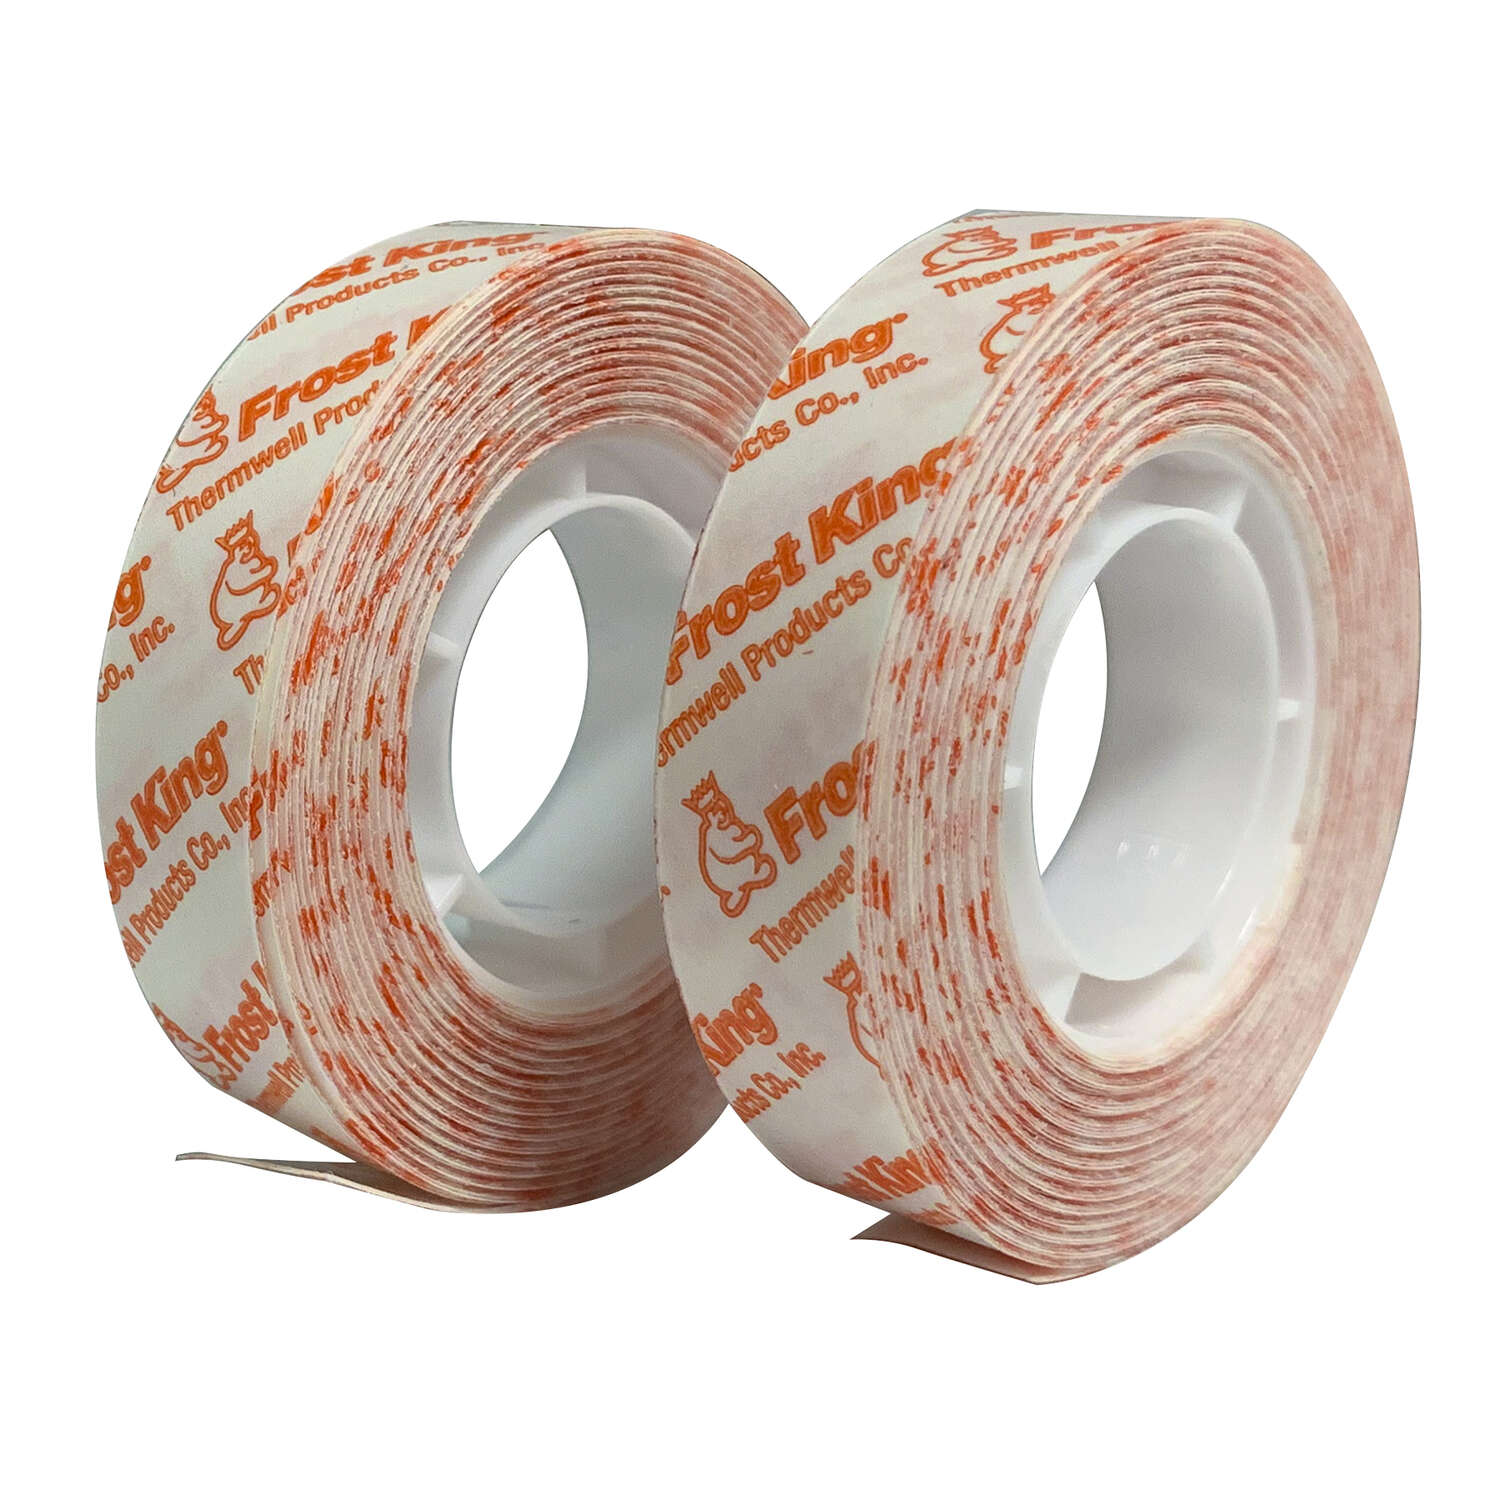 Frost King  Clear  Double-Sided  Indoor  Mounting Tape  1/2 in. W x 30 ft. L